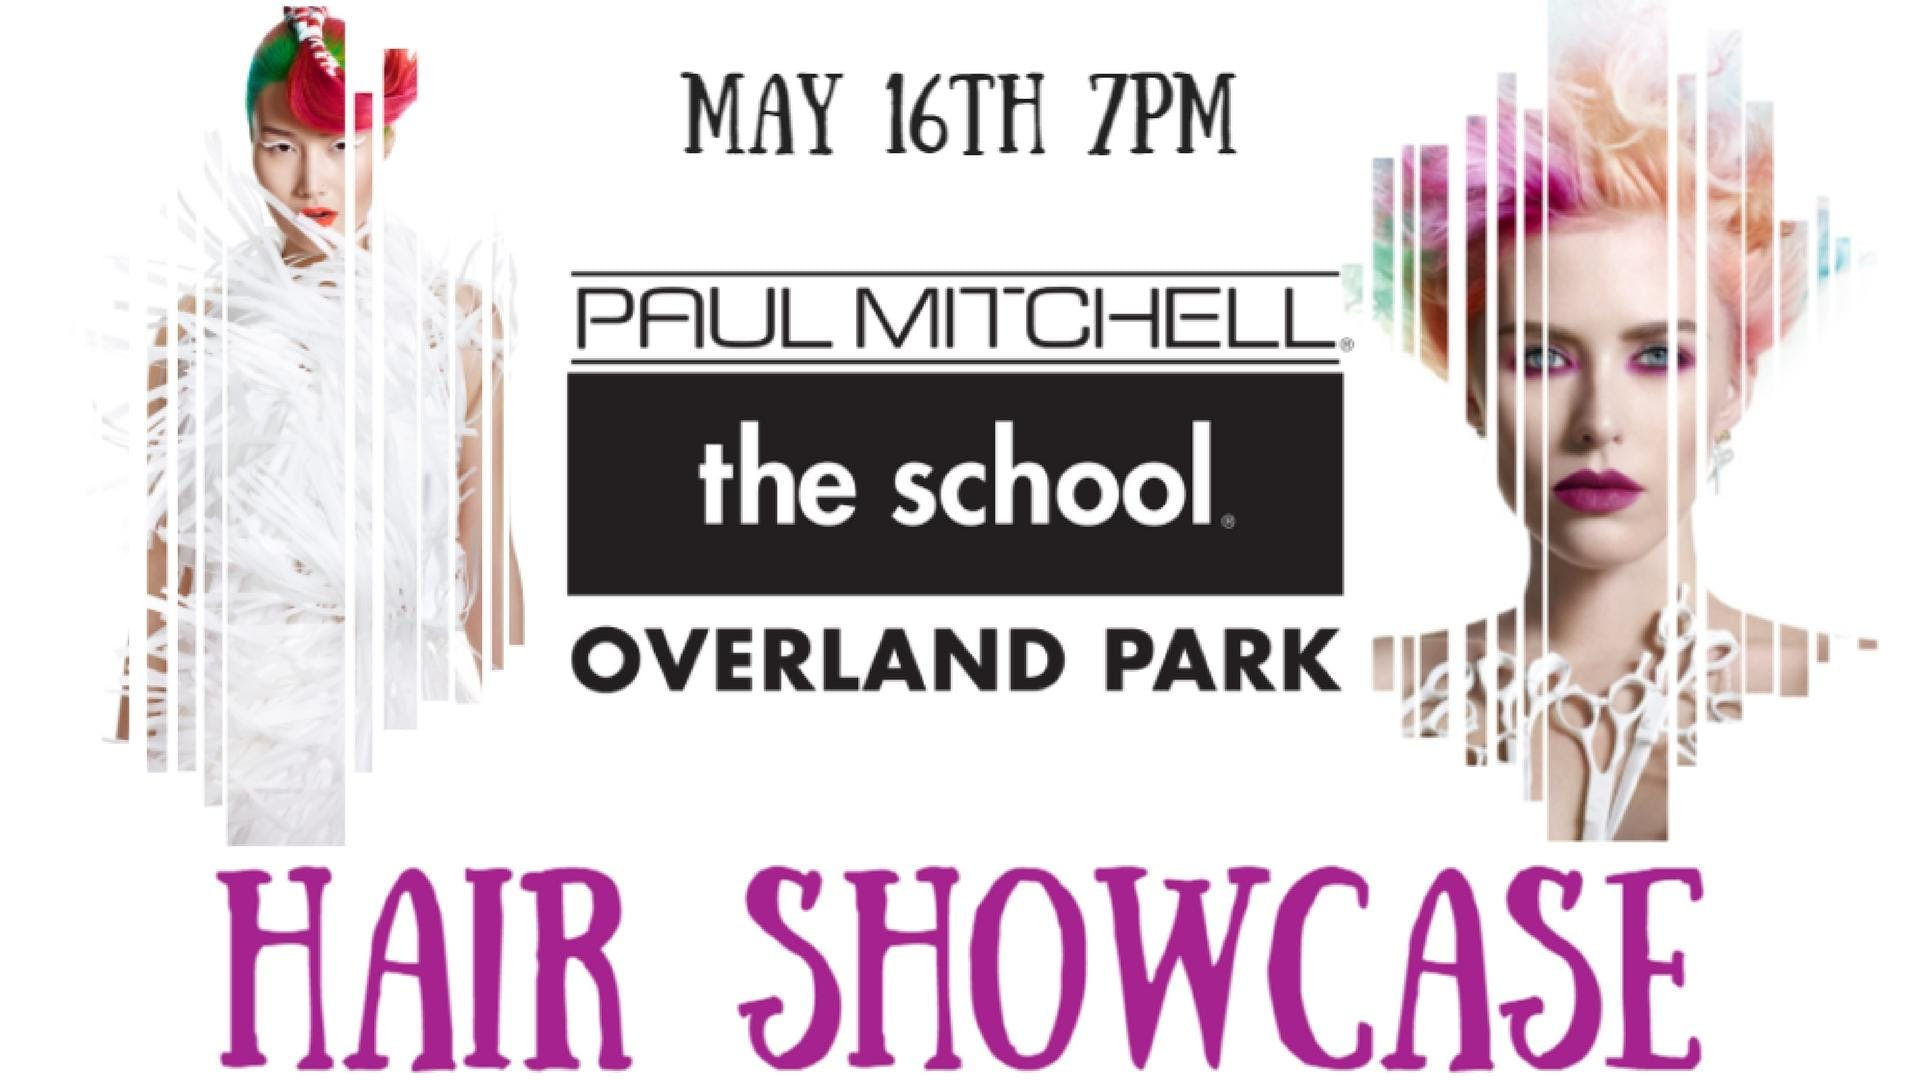 Paul Mitchell The School Overland Park Hair Showcase 16 May 2018